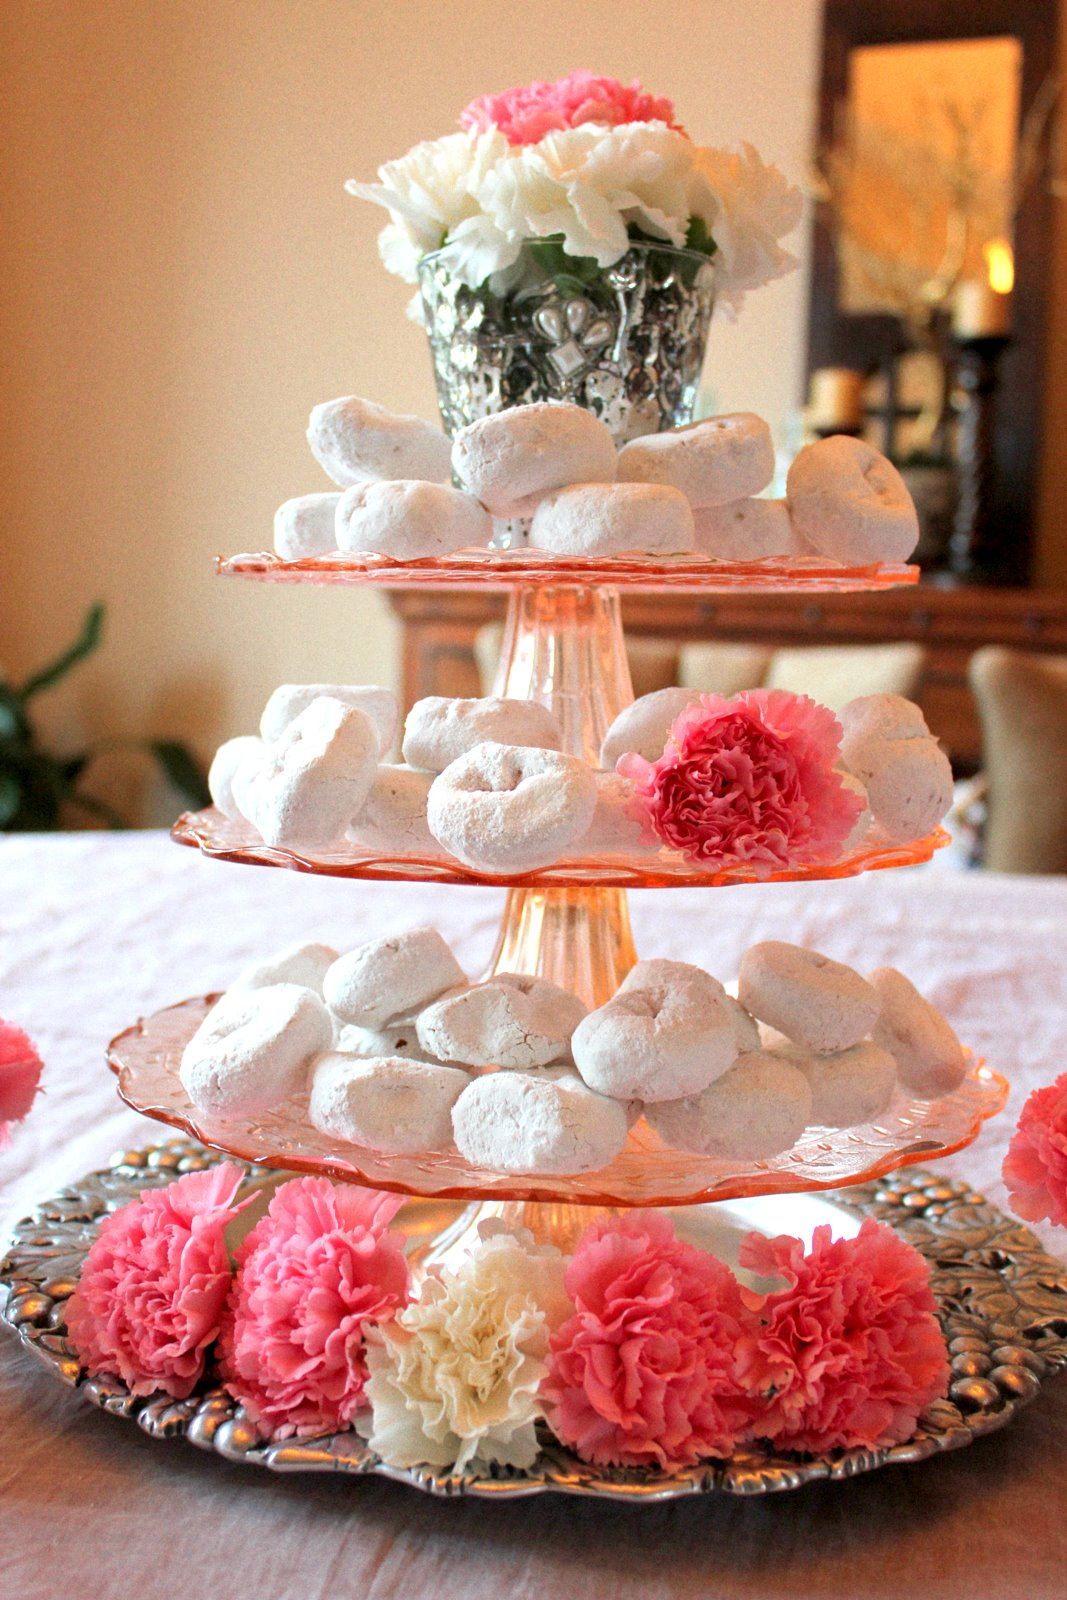 swanky::chic::fete: donuts and carnations [a valentine's ... - photo#41